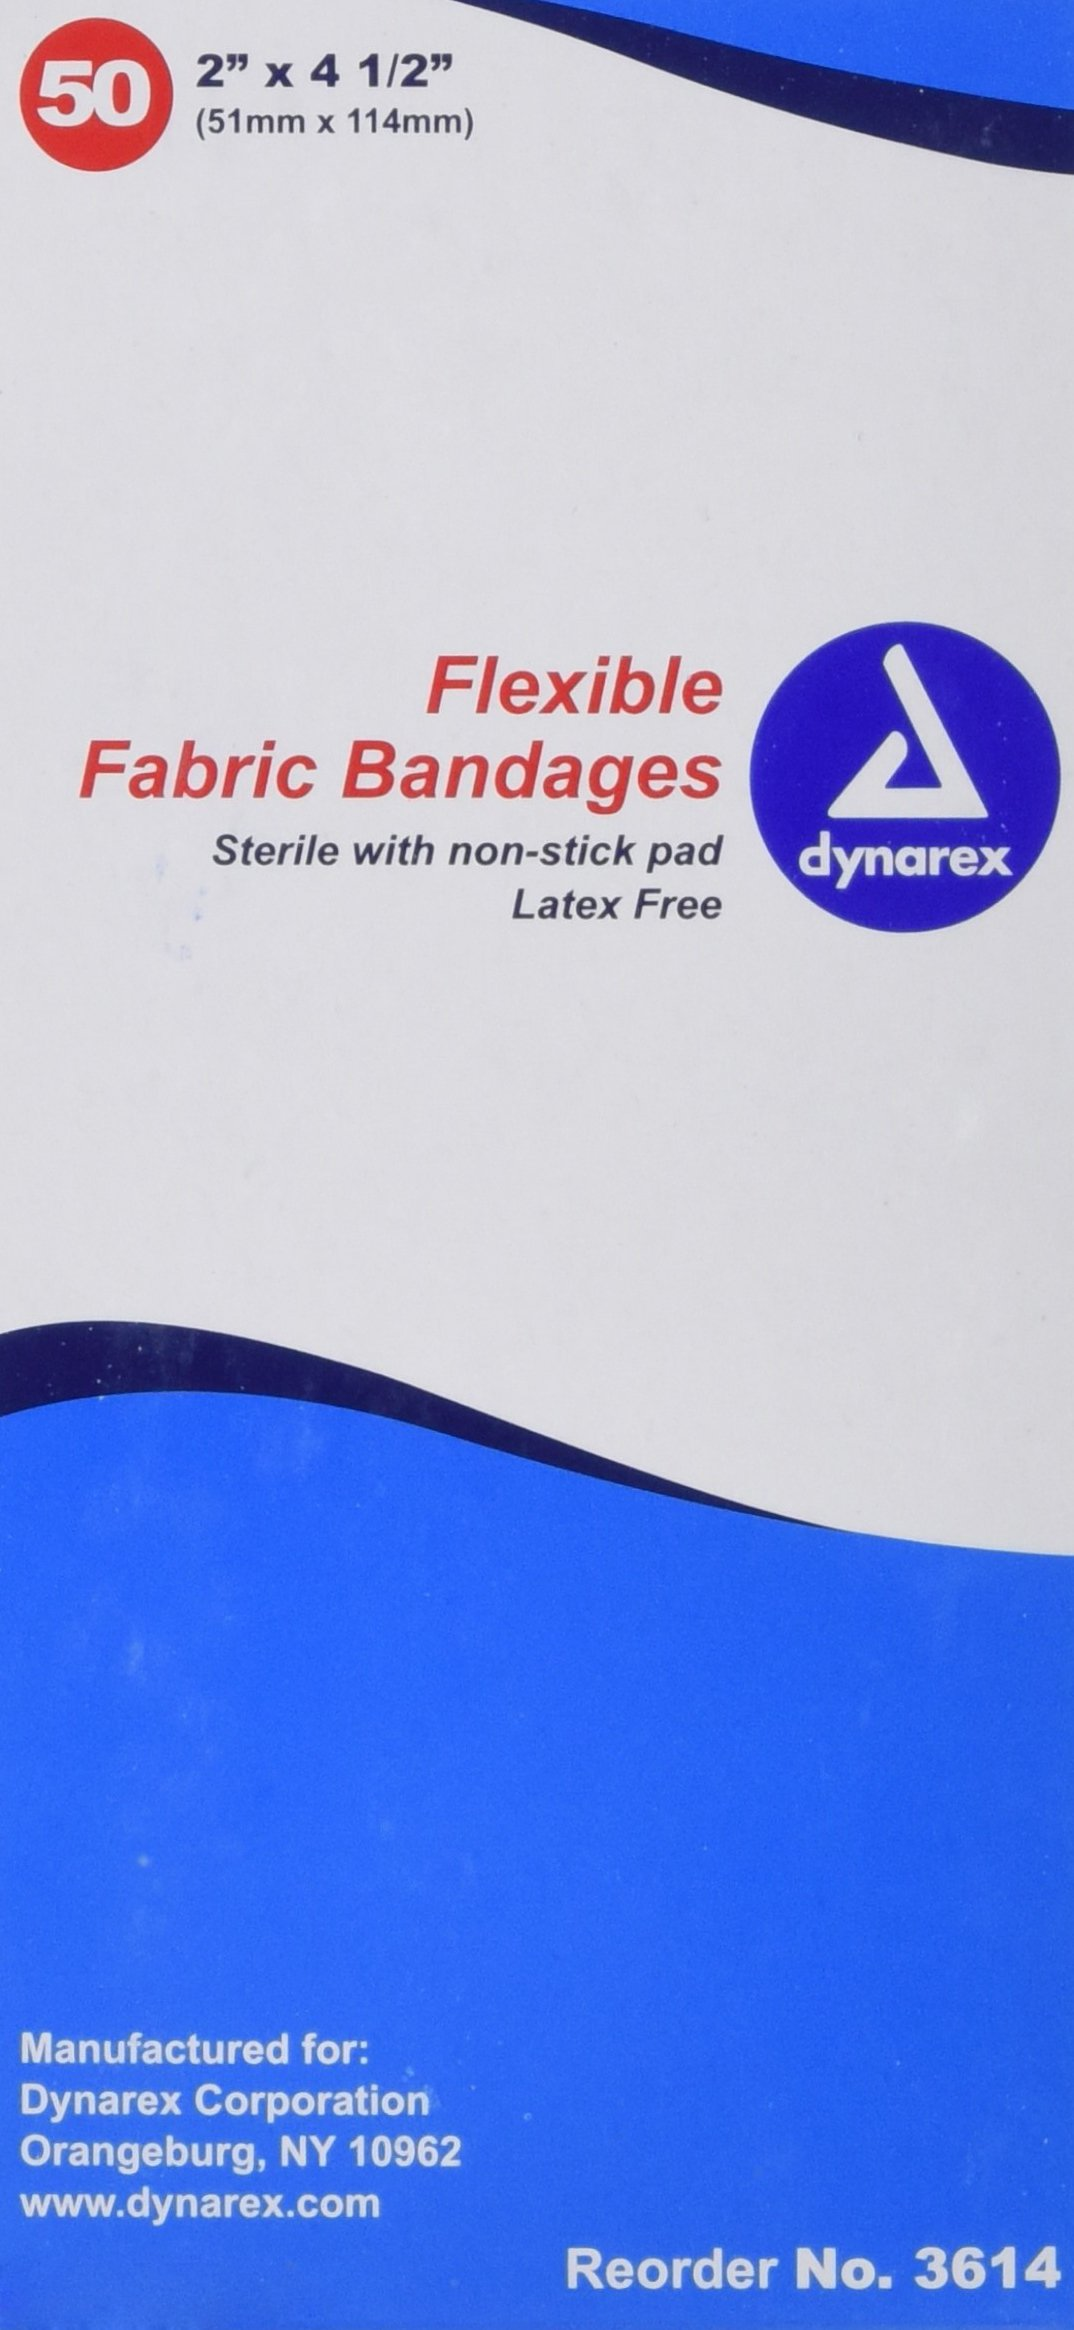 Dynarex Adhesive Fabric Bandages Sterile, 2 x 4 1/2 Inch, 24 Count